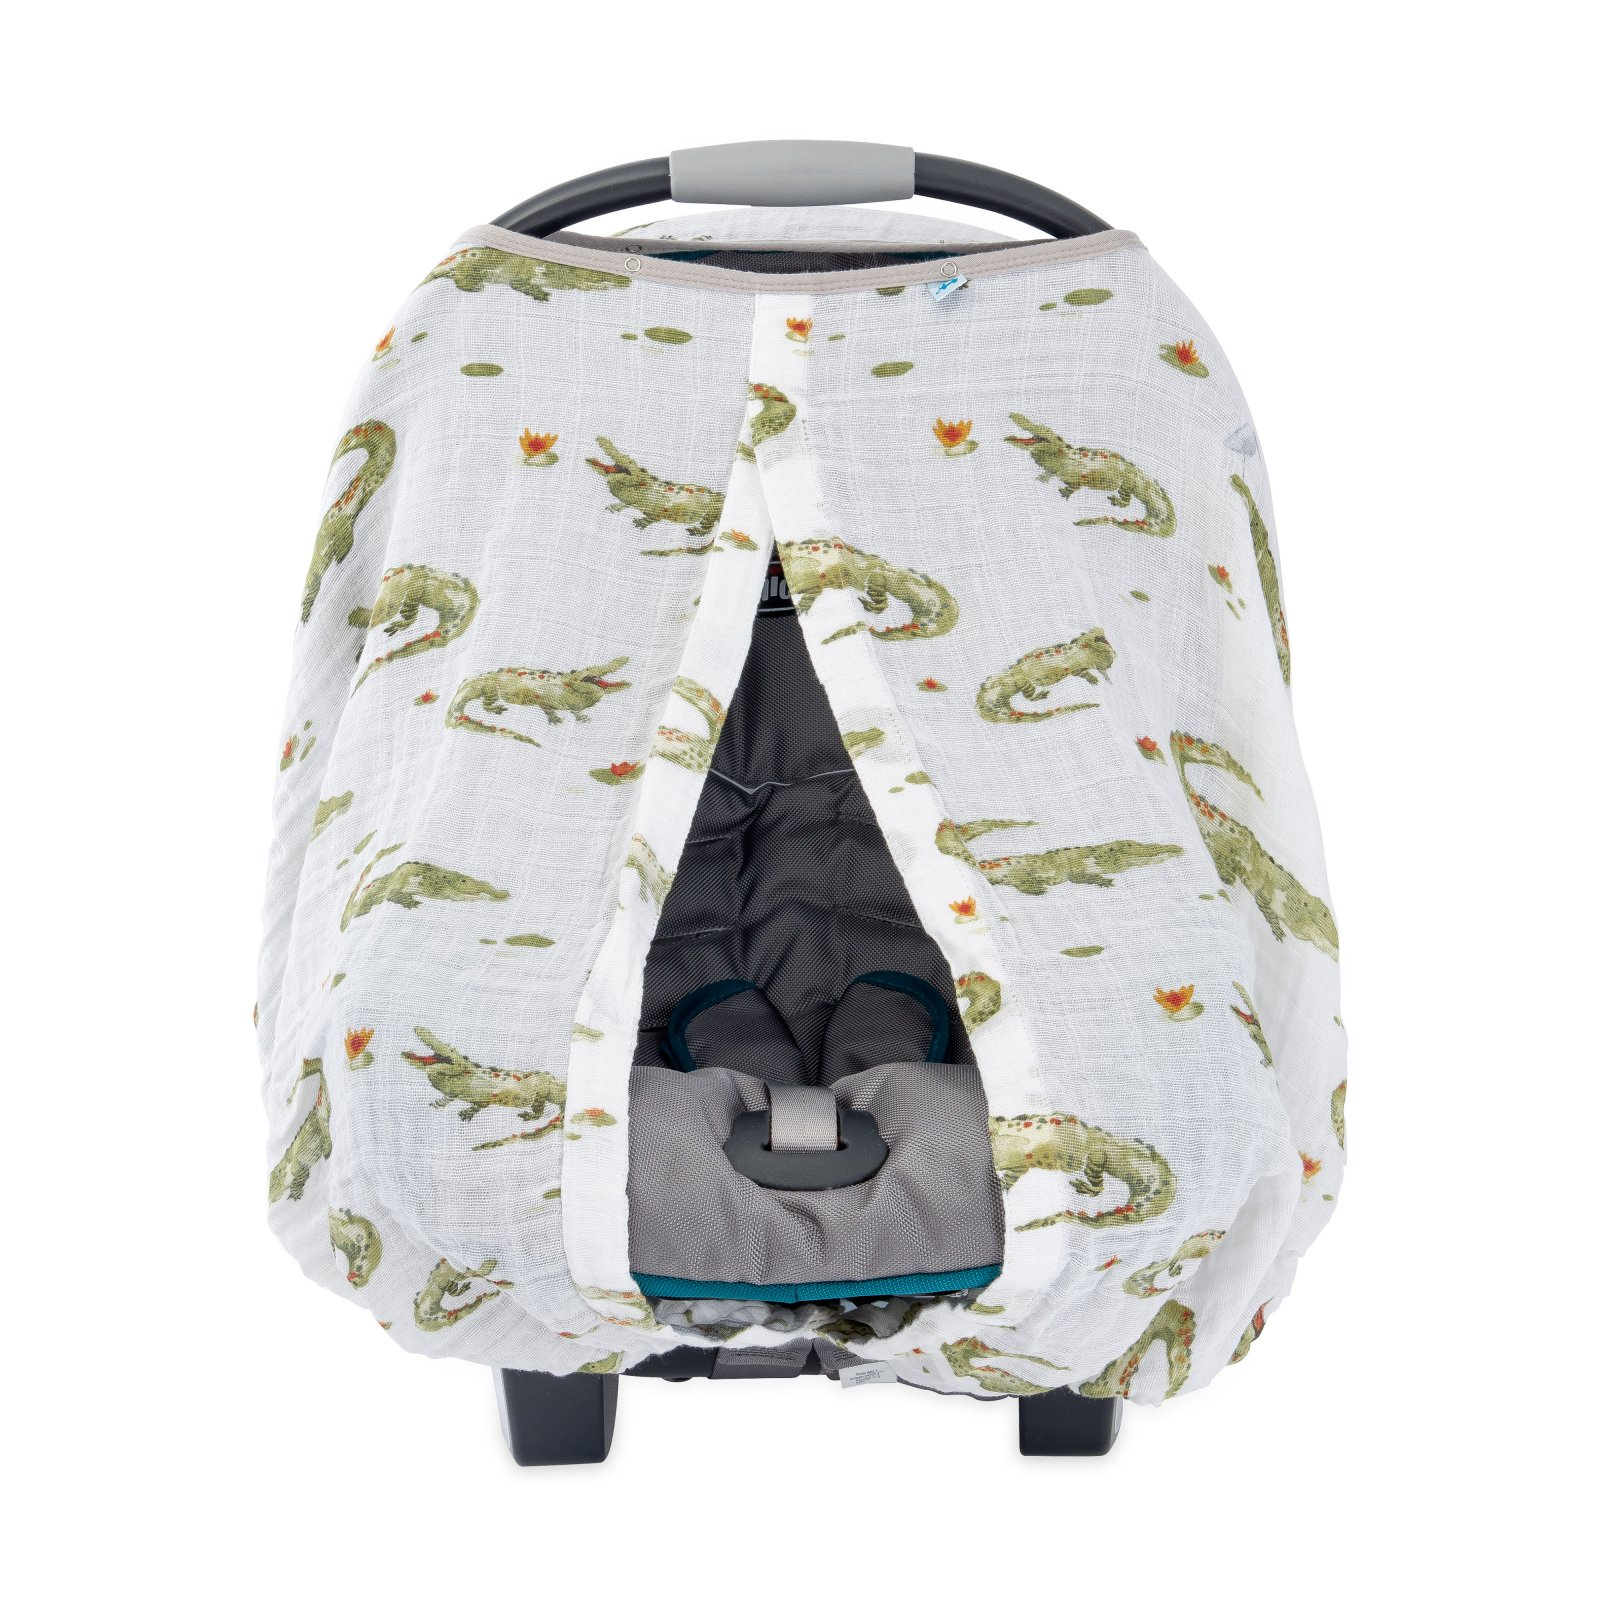 Little Unicorn Cotton Muslin Car Seat Canopy - Gators